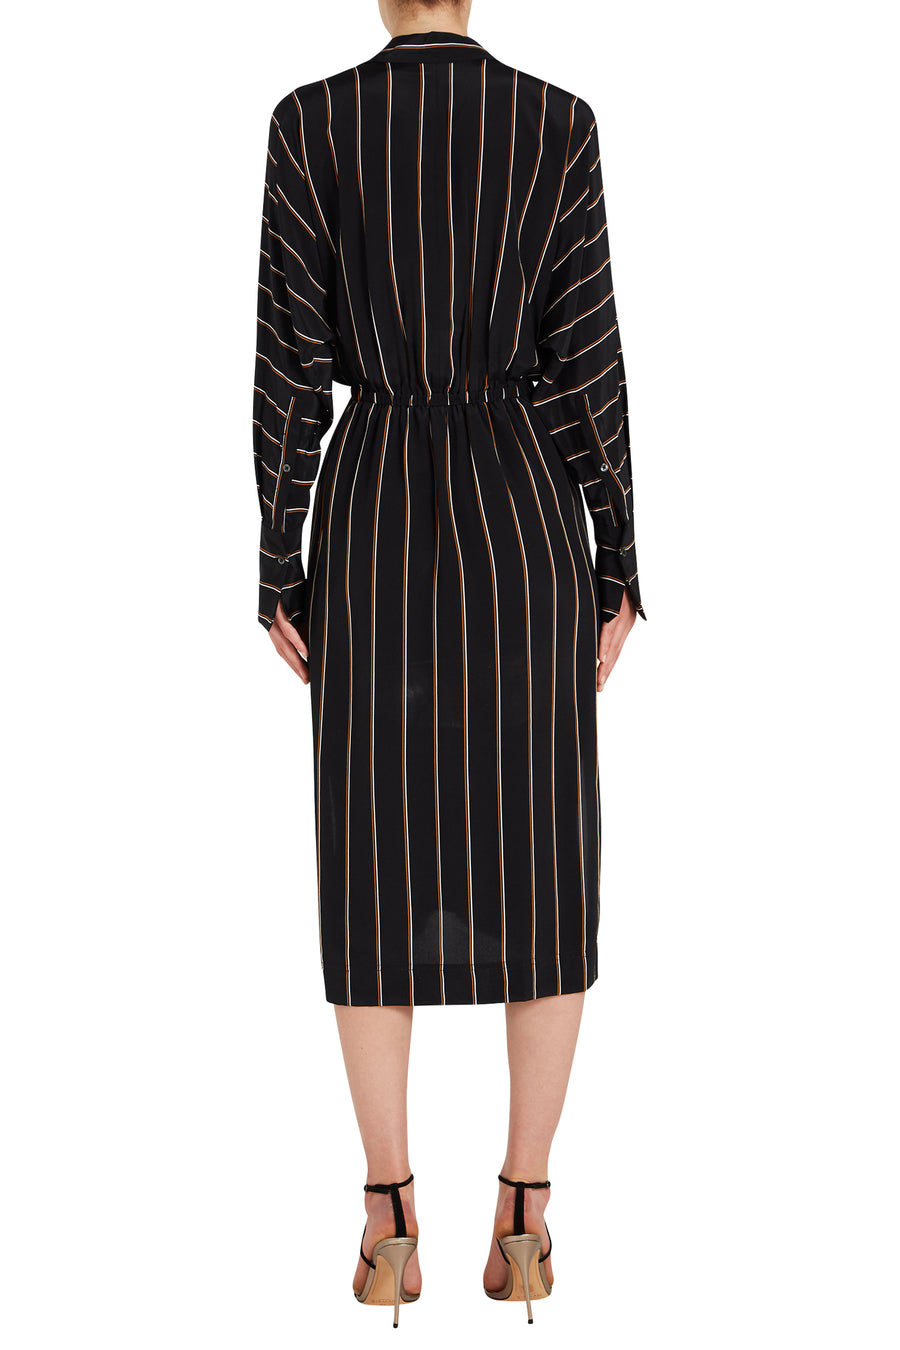 NICO STRIPE DRESS